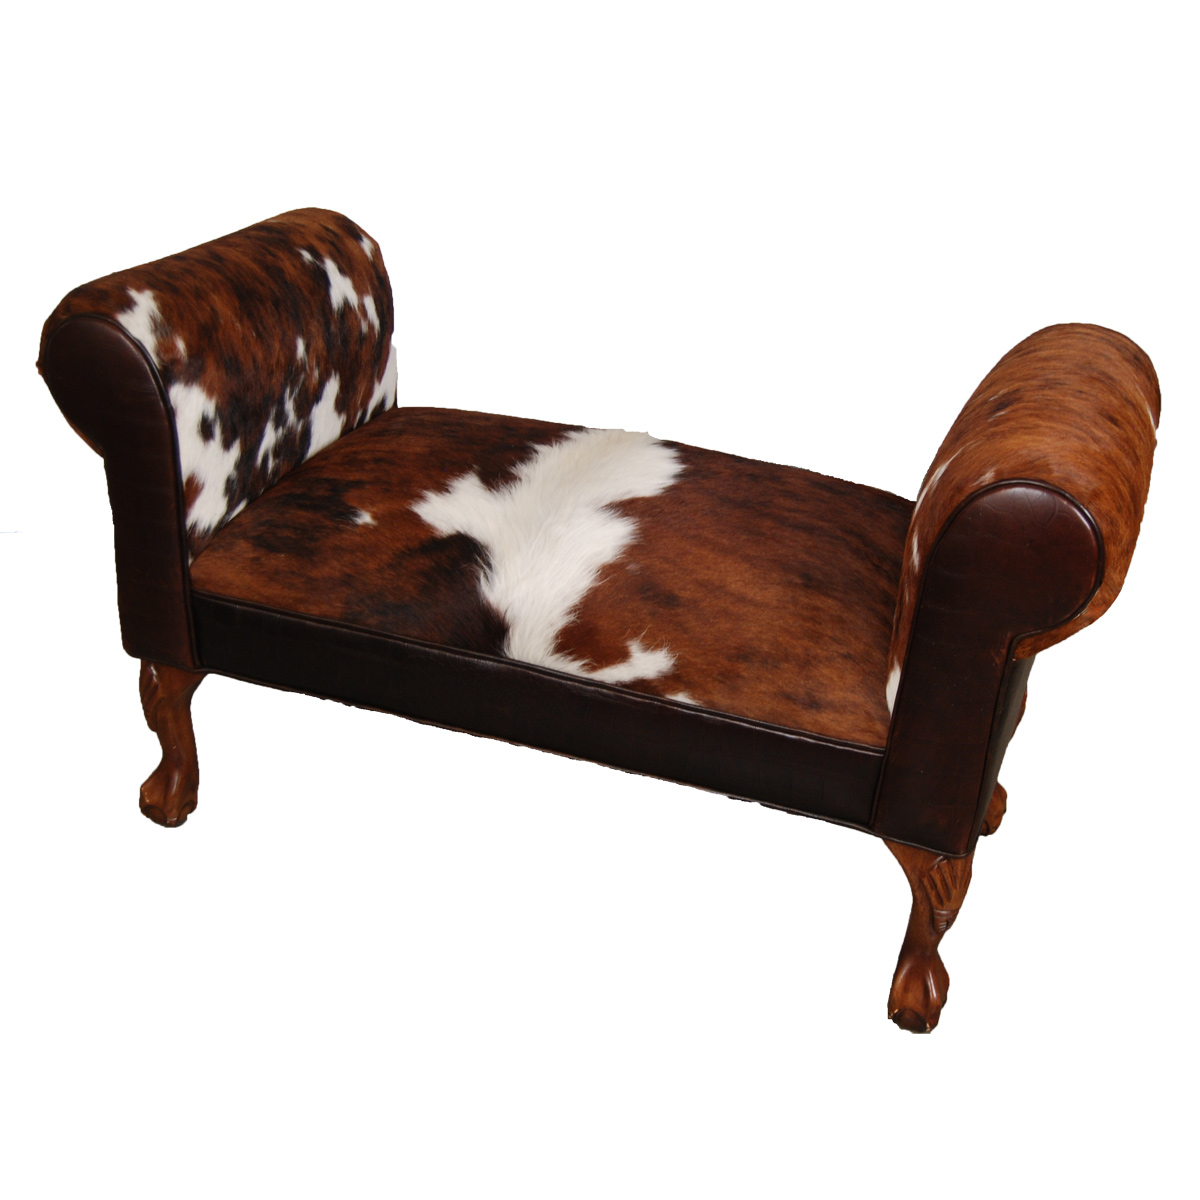 Black Forest Decor Roll arm bench